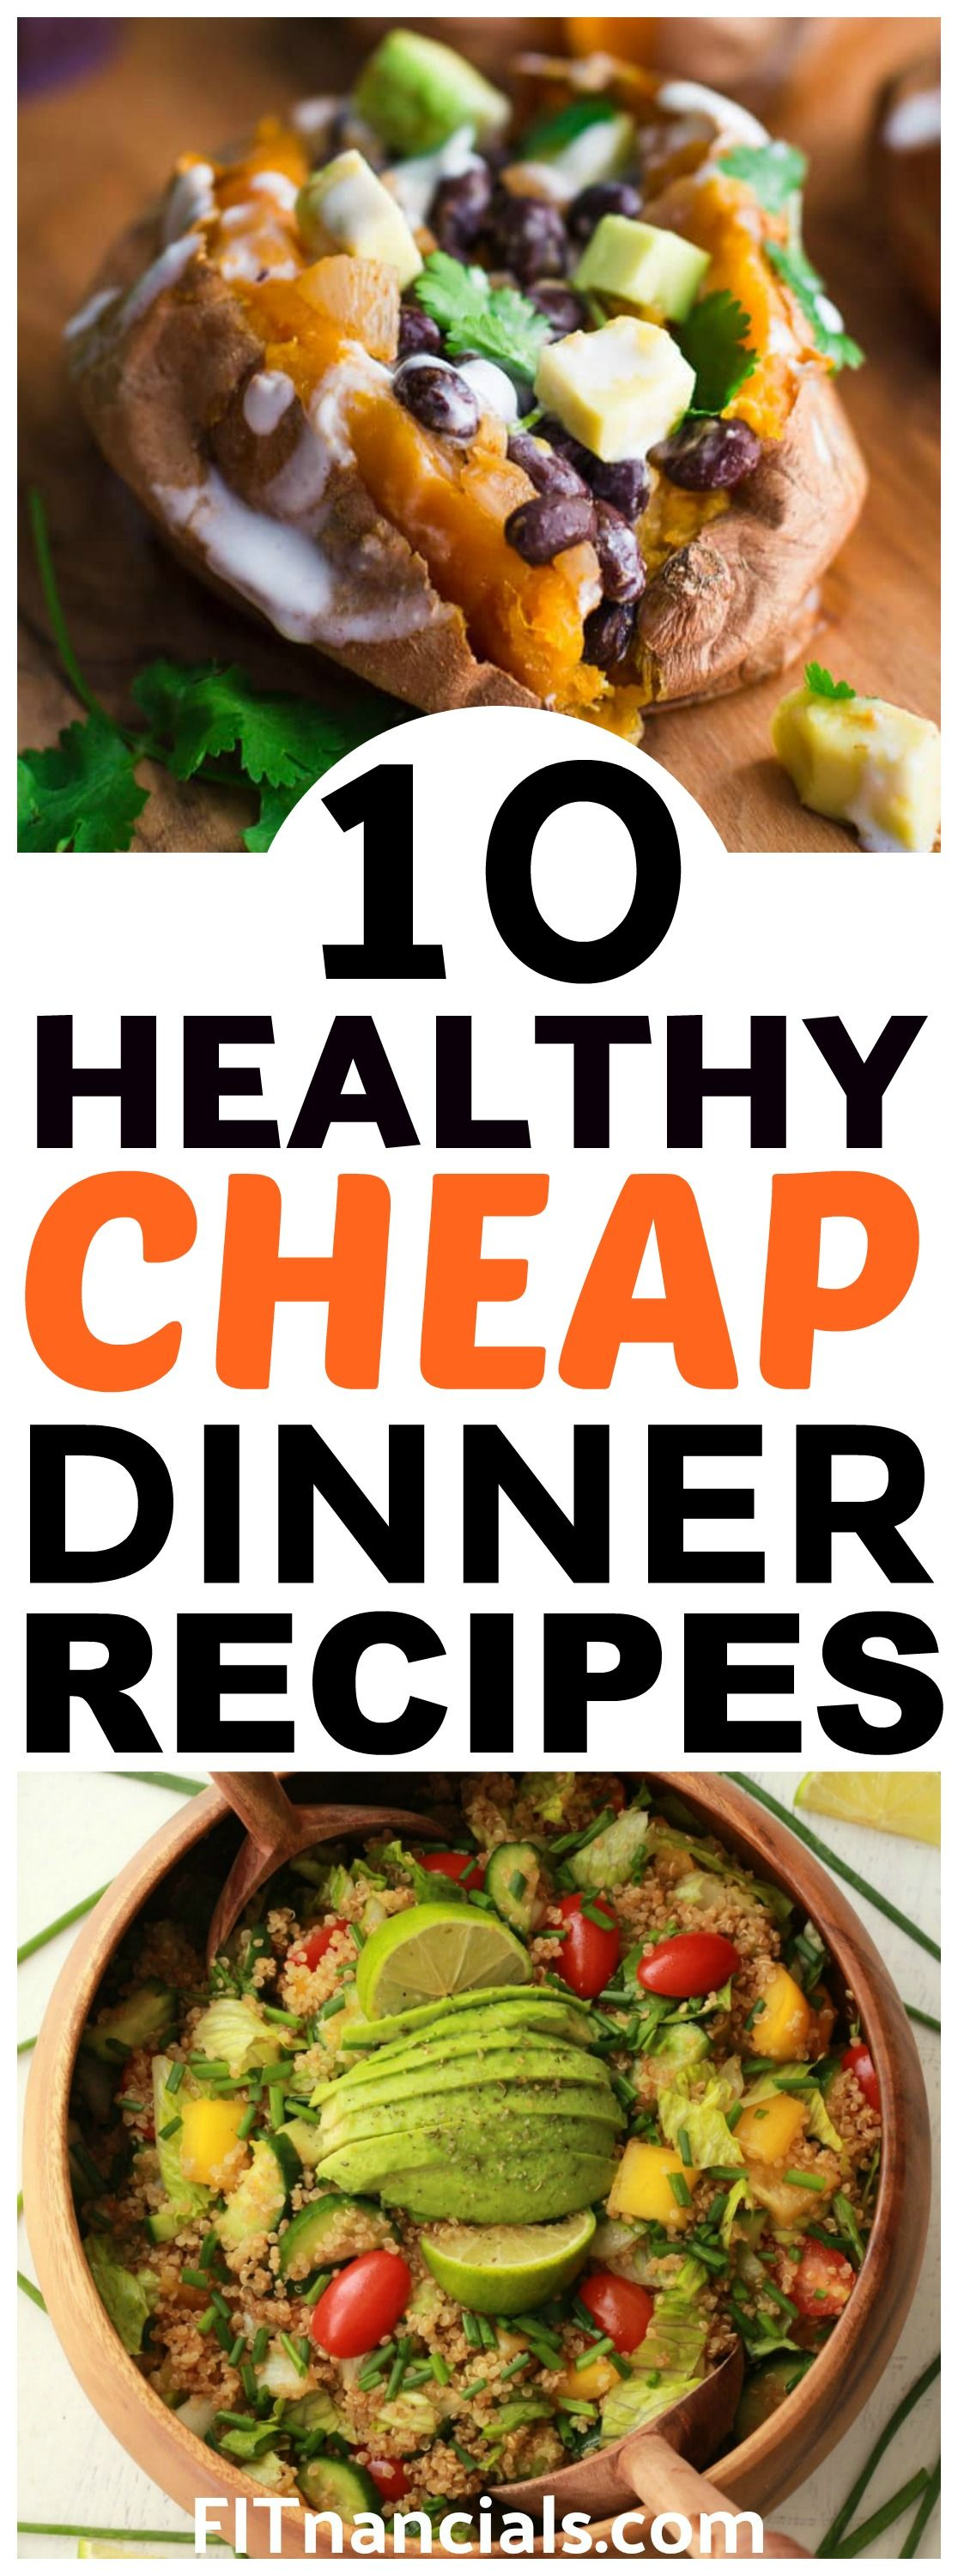 10 Healthy And Cheap Dinner Recipes